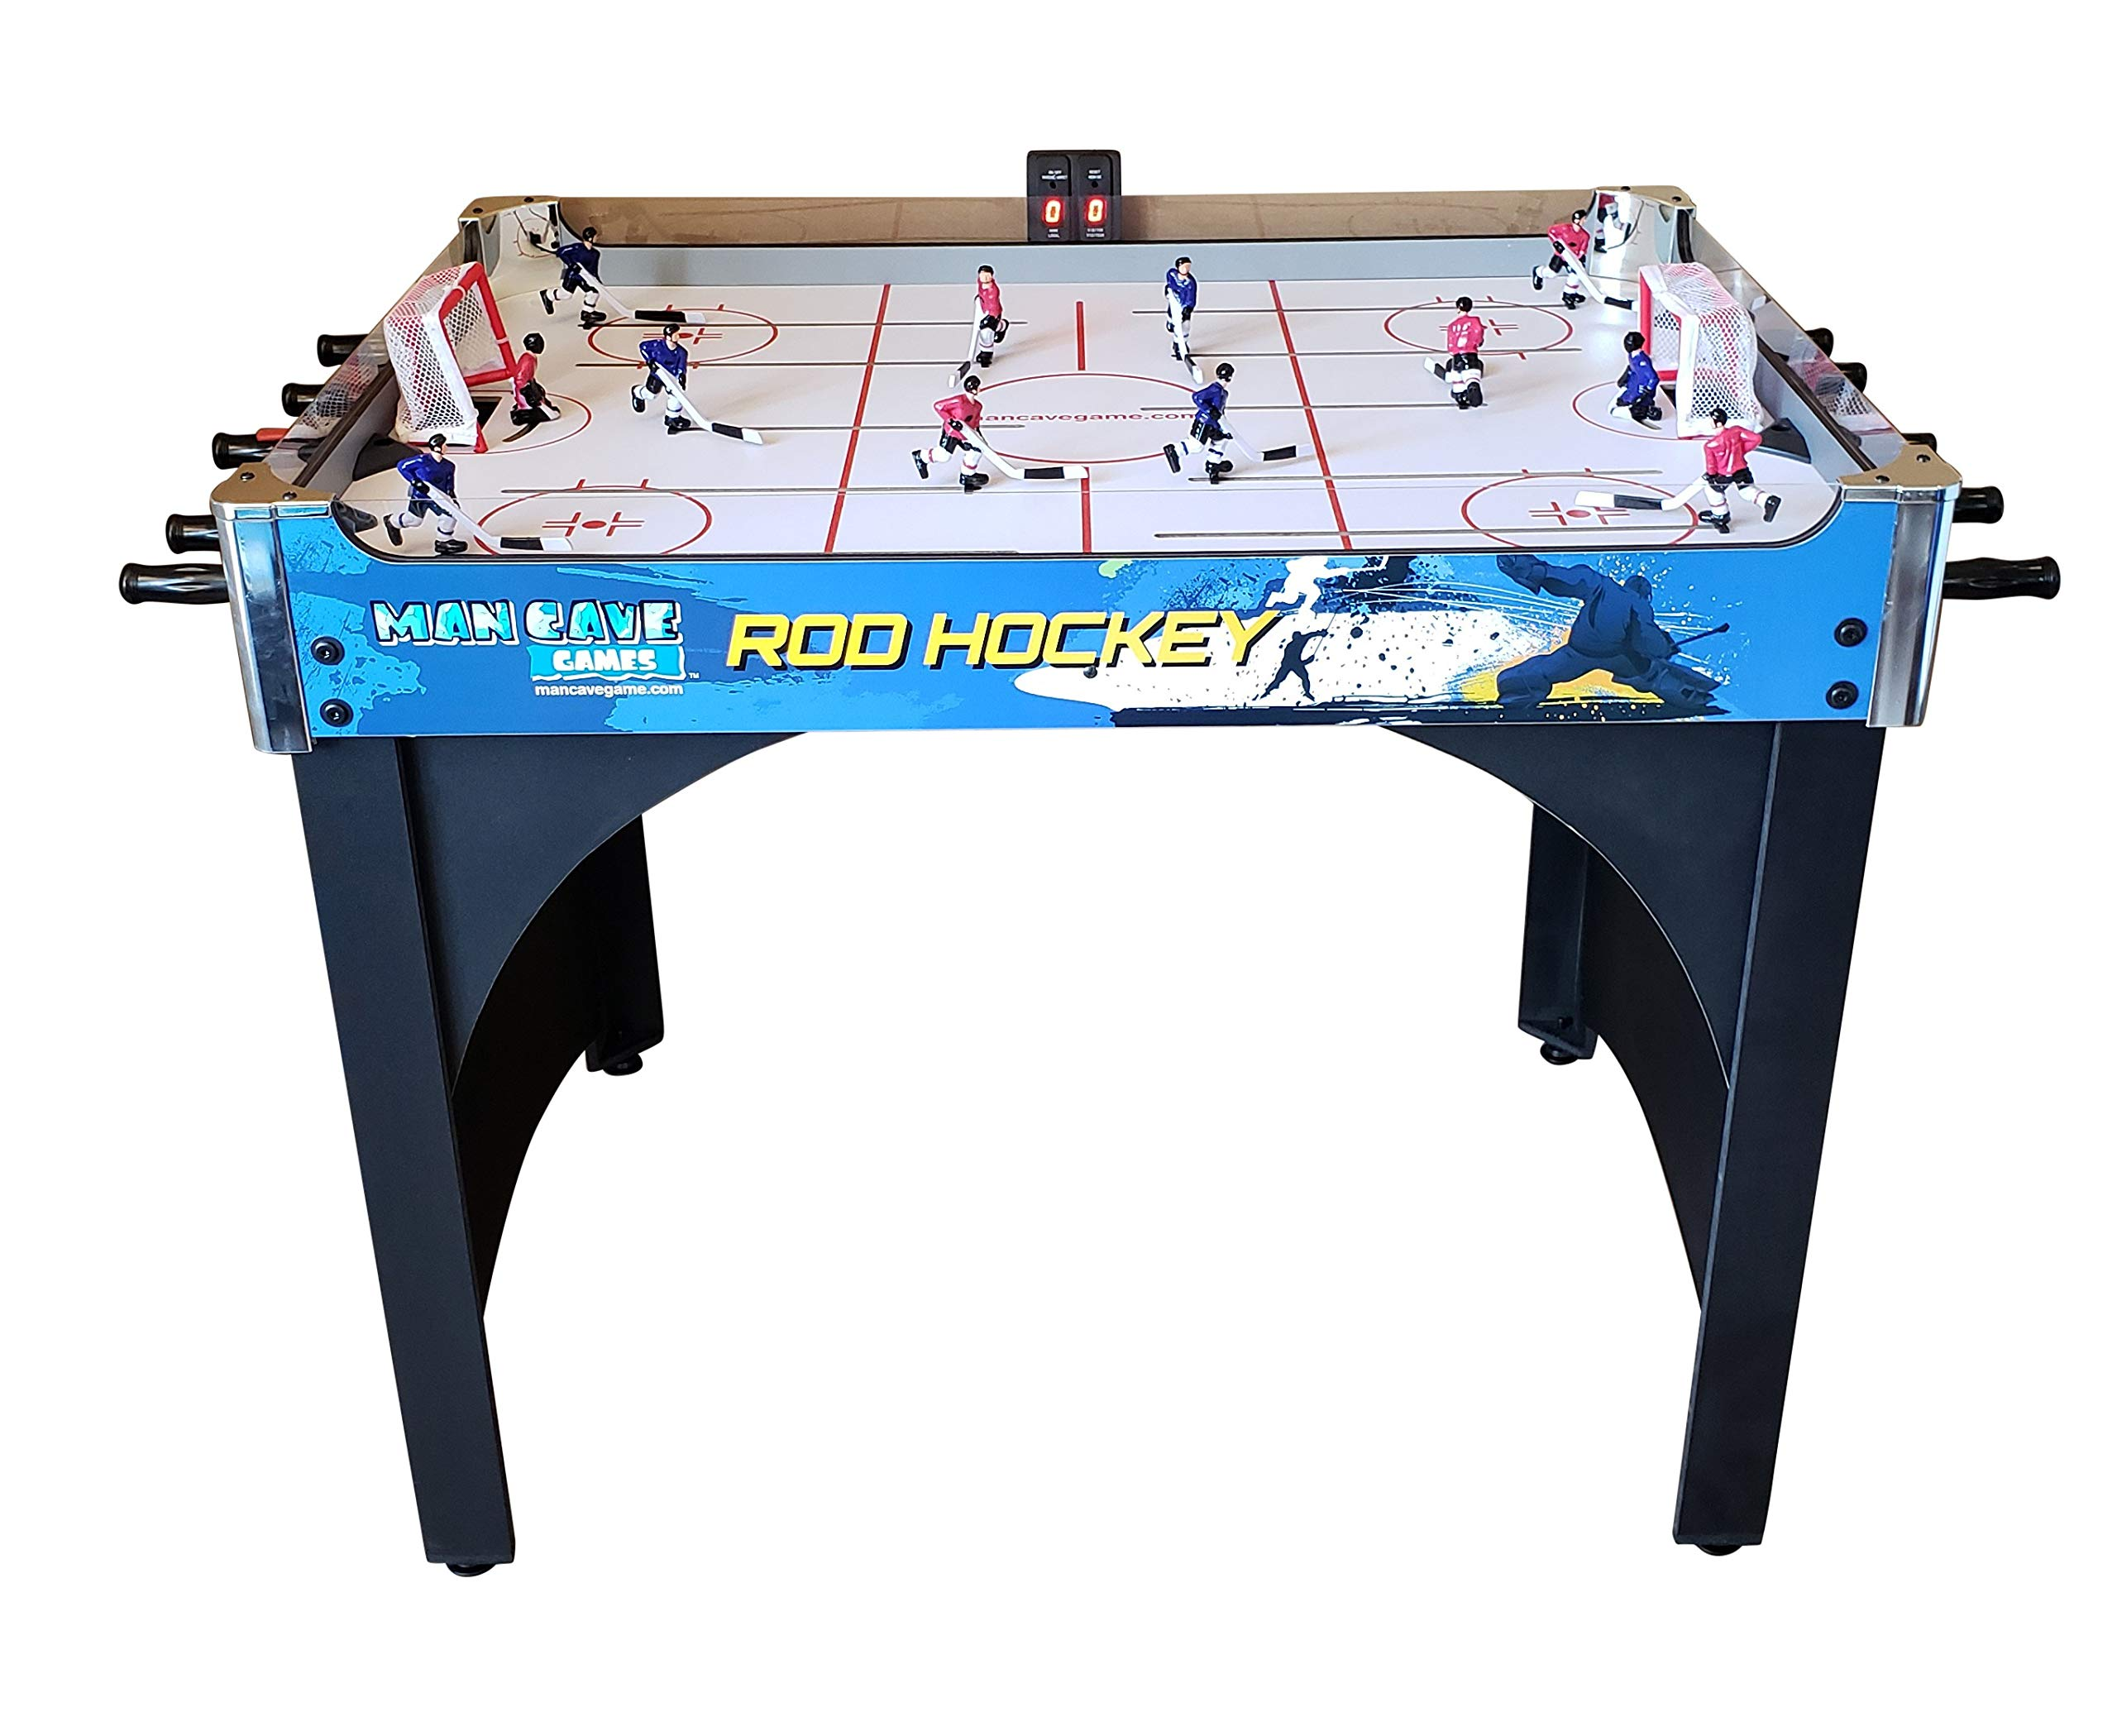 ManCave Games 40'' Electronic Rod Hockey Game. Head-to-Head Table Hockey with Manual Scoring. Great Size, Durability & Easier for Kids to Play Than Dome Hockey. by ManCave Games